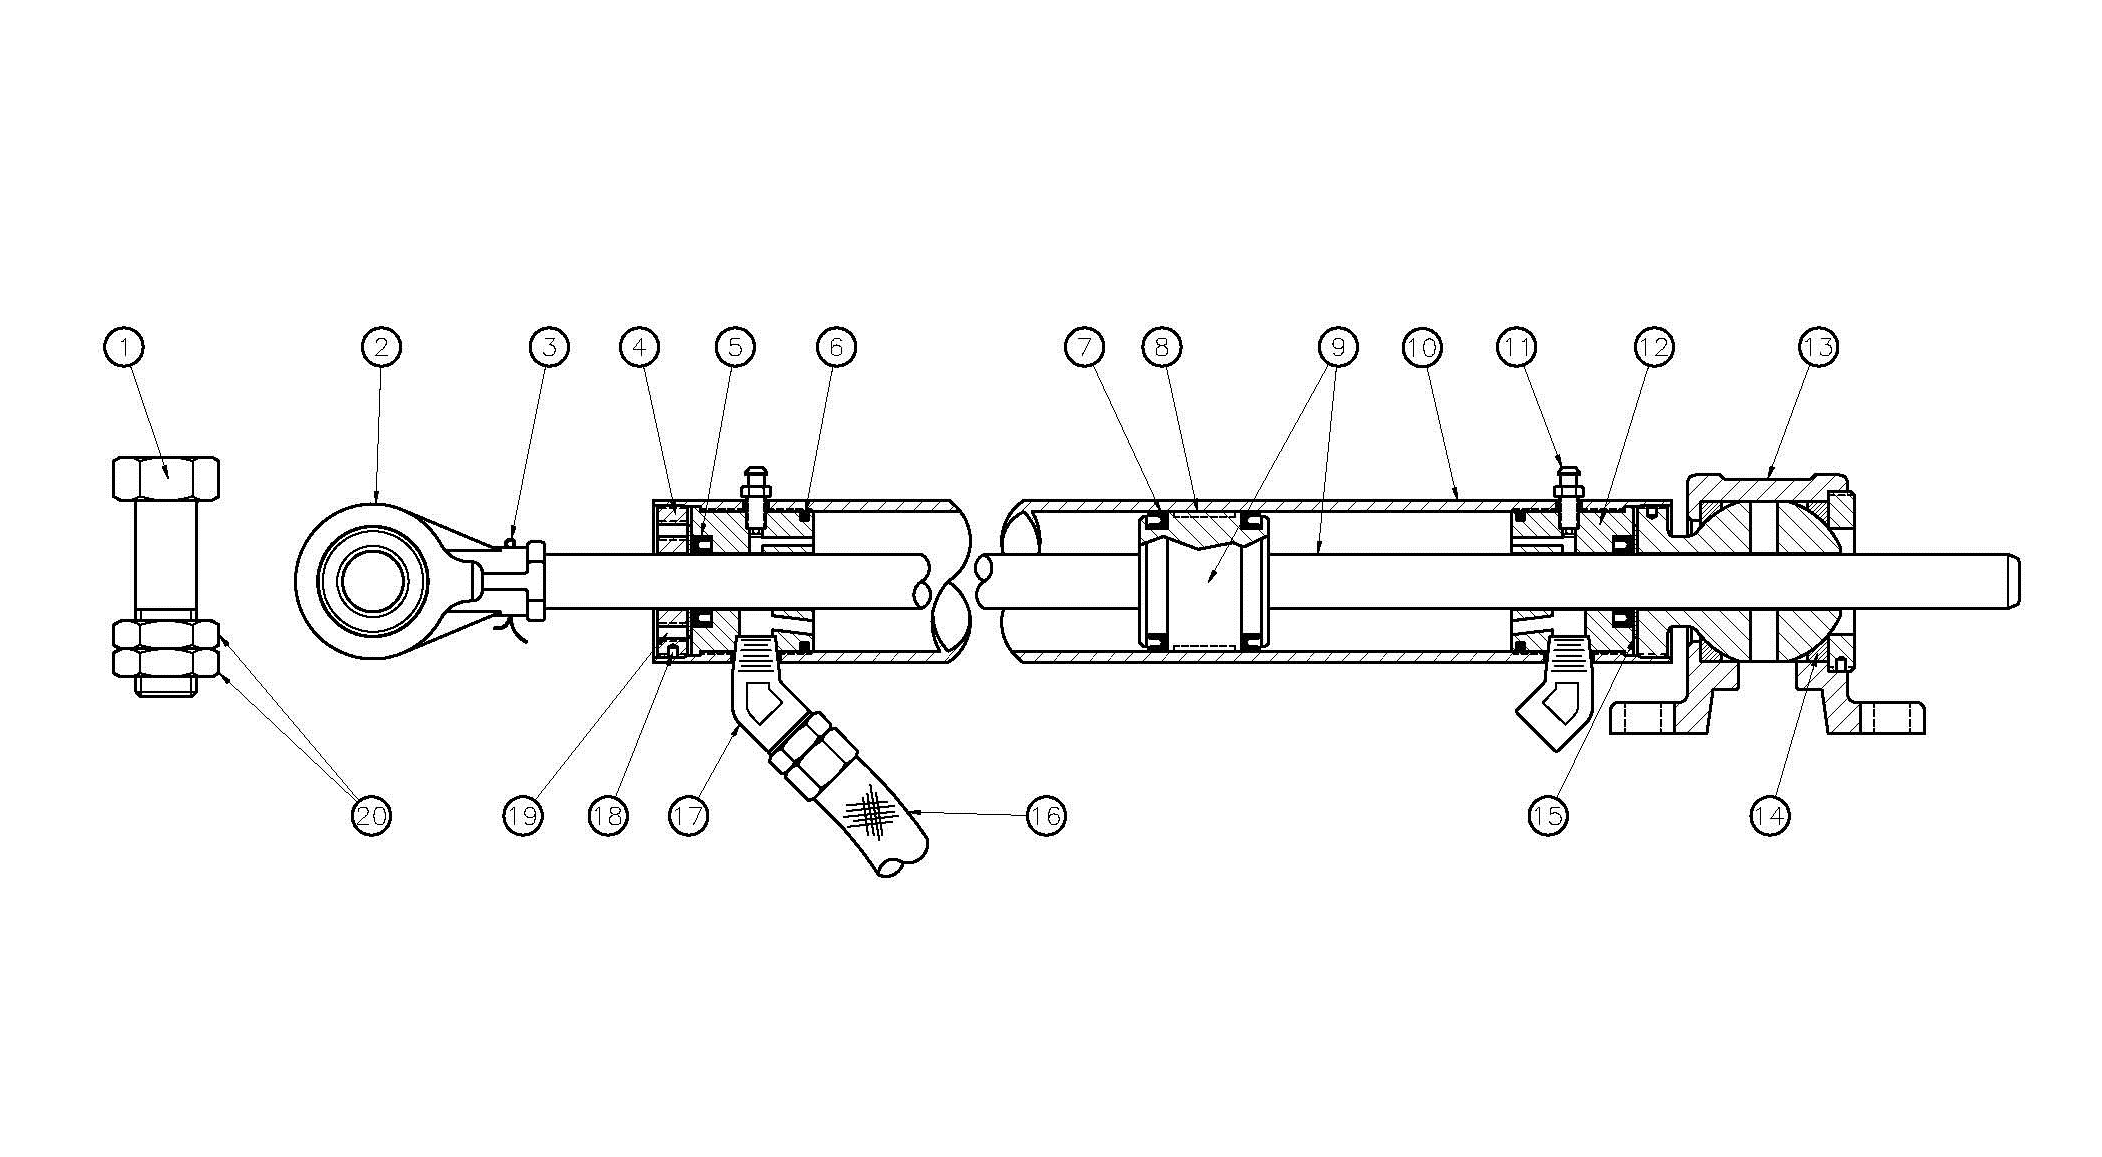 Type N40 Hydraulic Cylinder Assembly Diagram